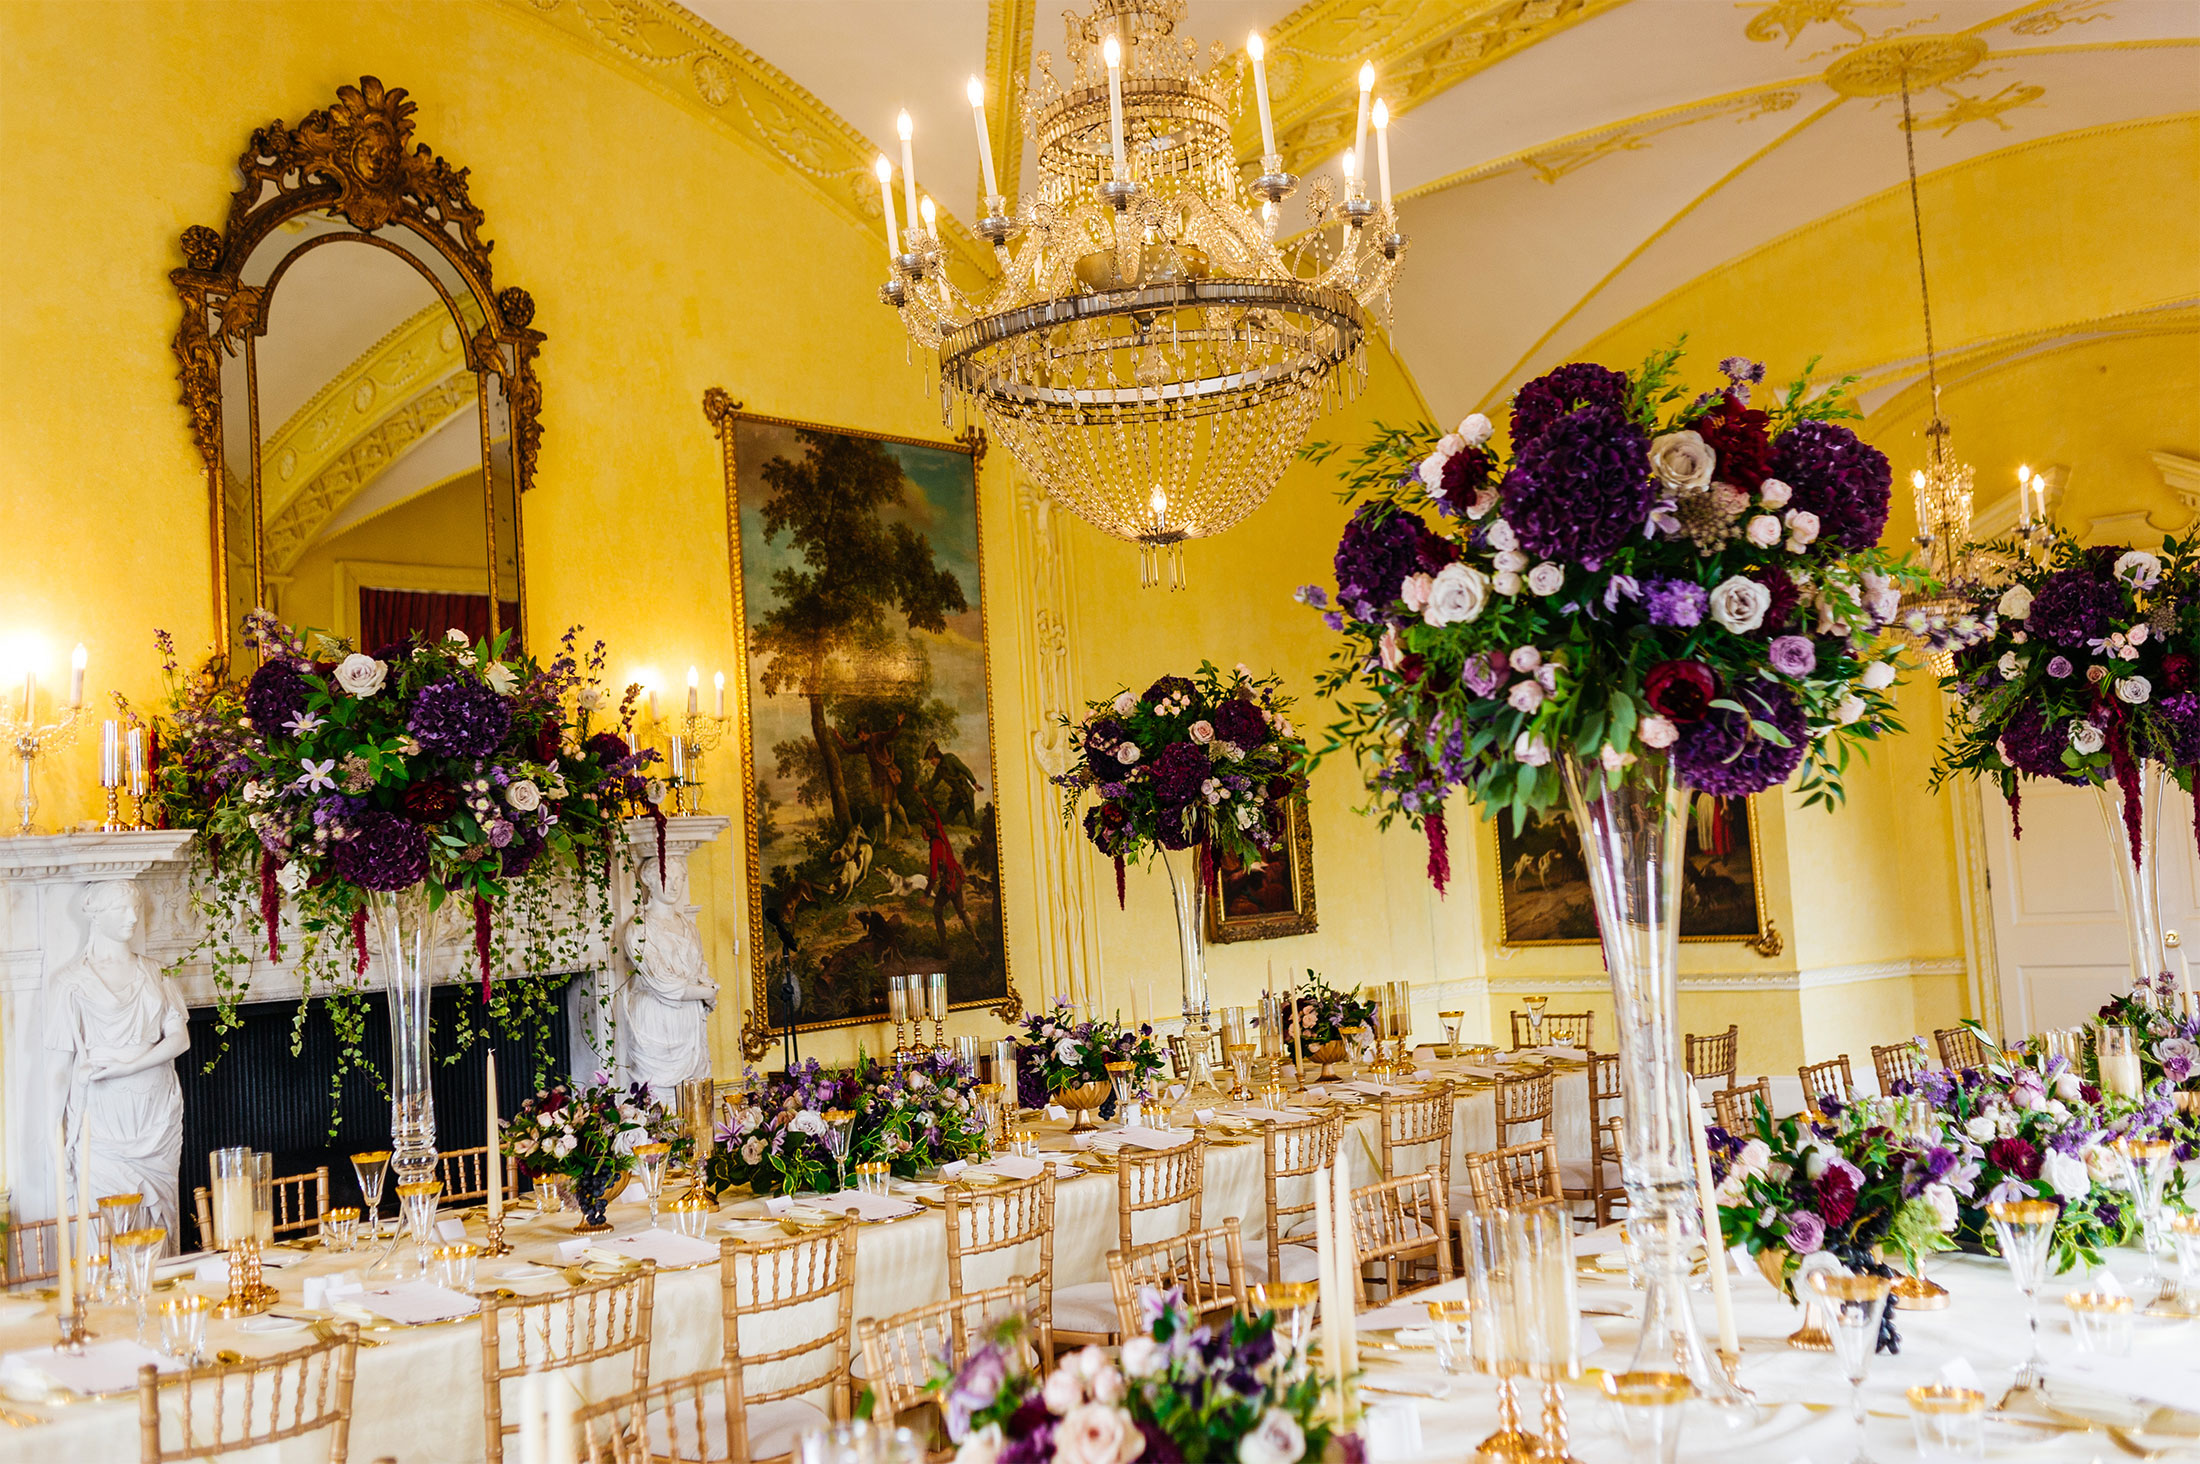 Kilruddery House Wedding Flowers0973.jpg